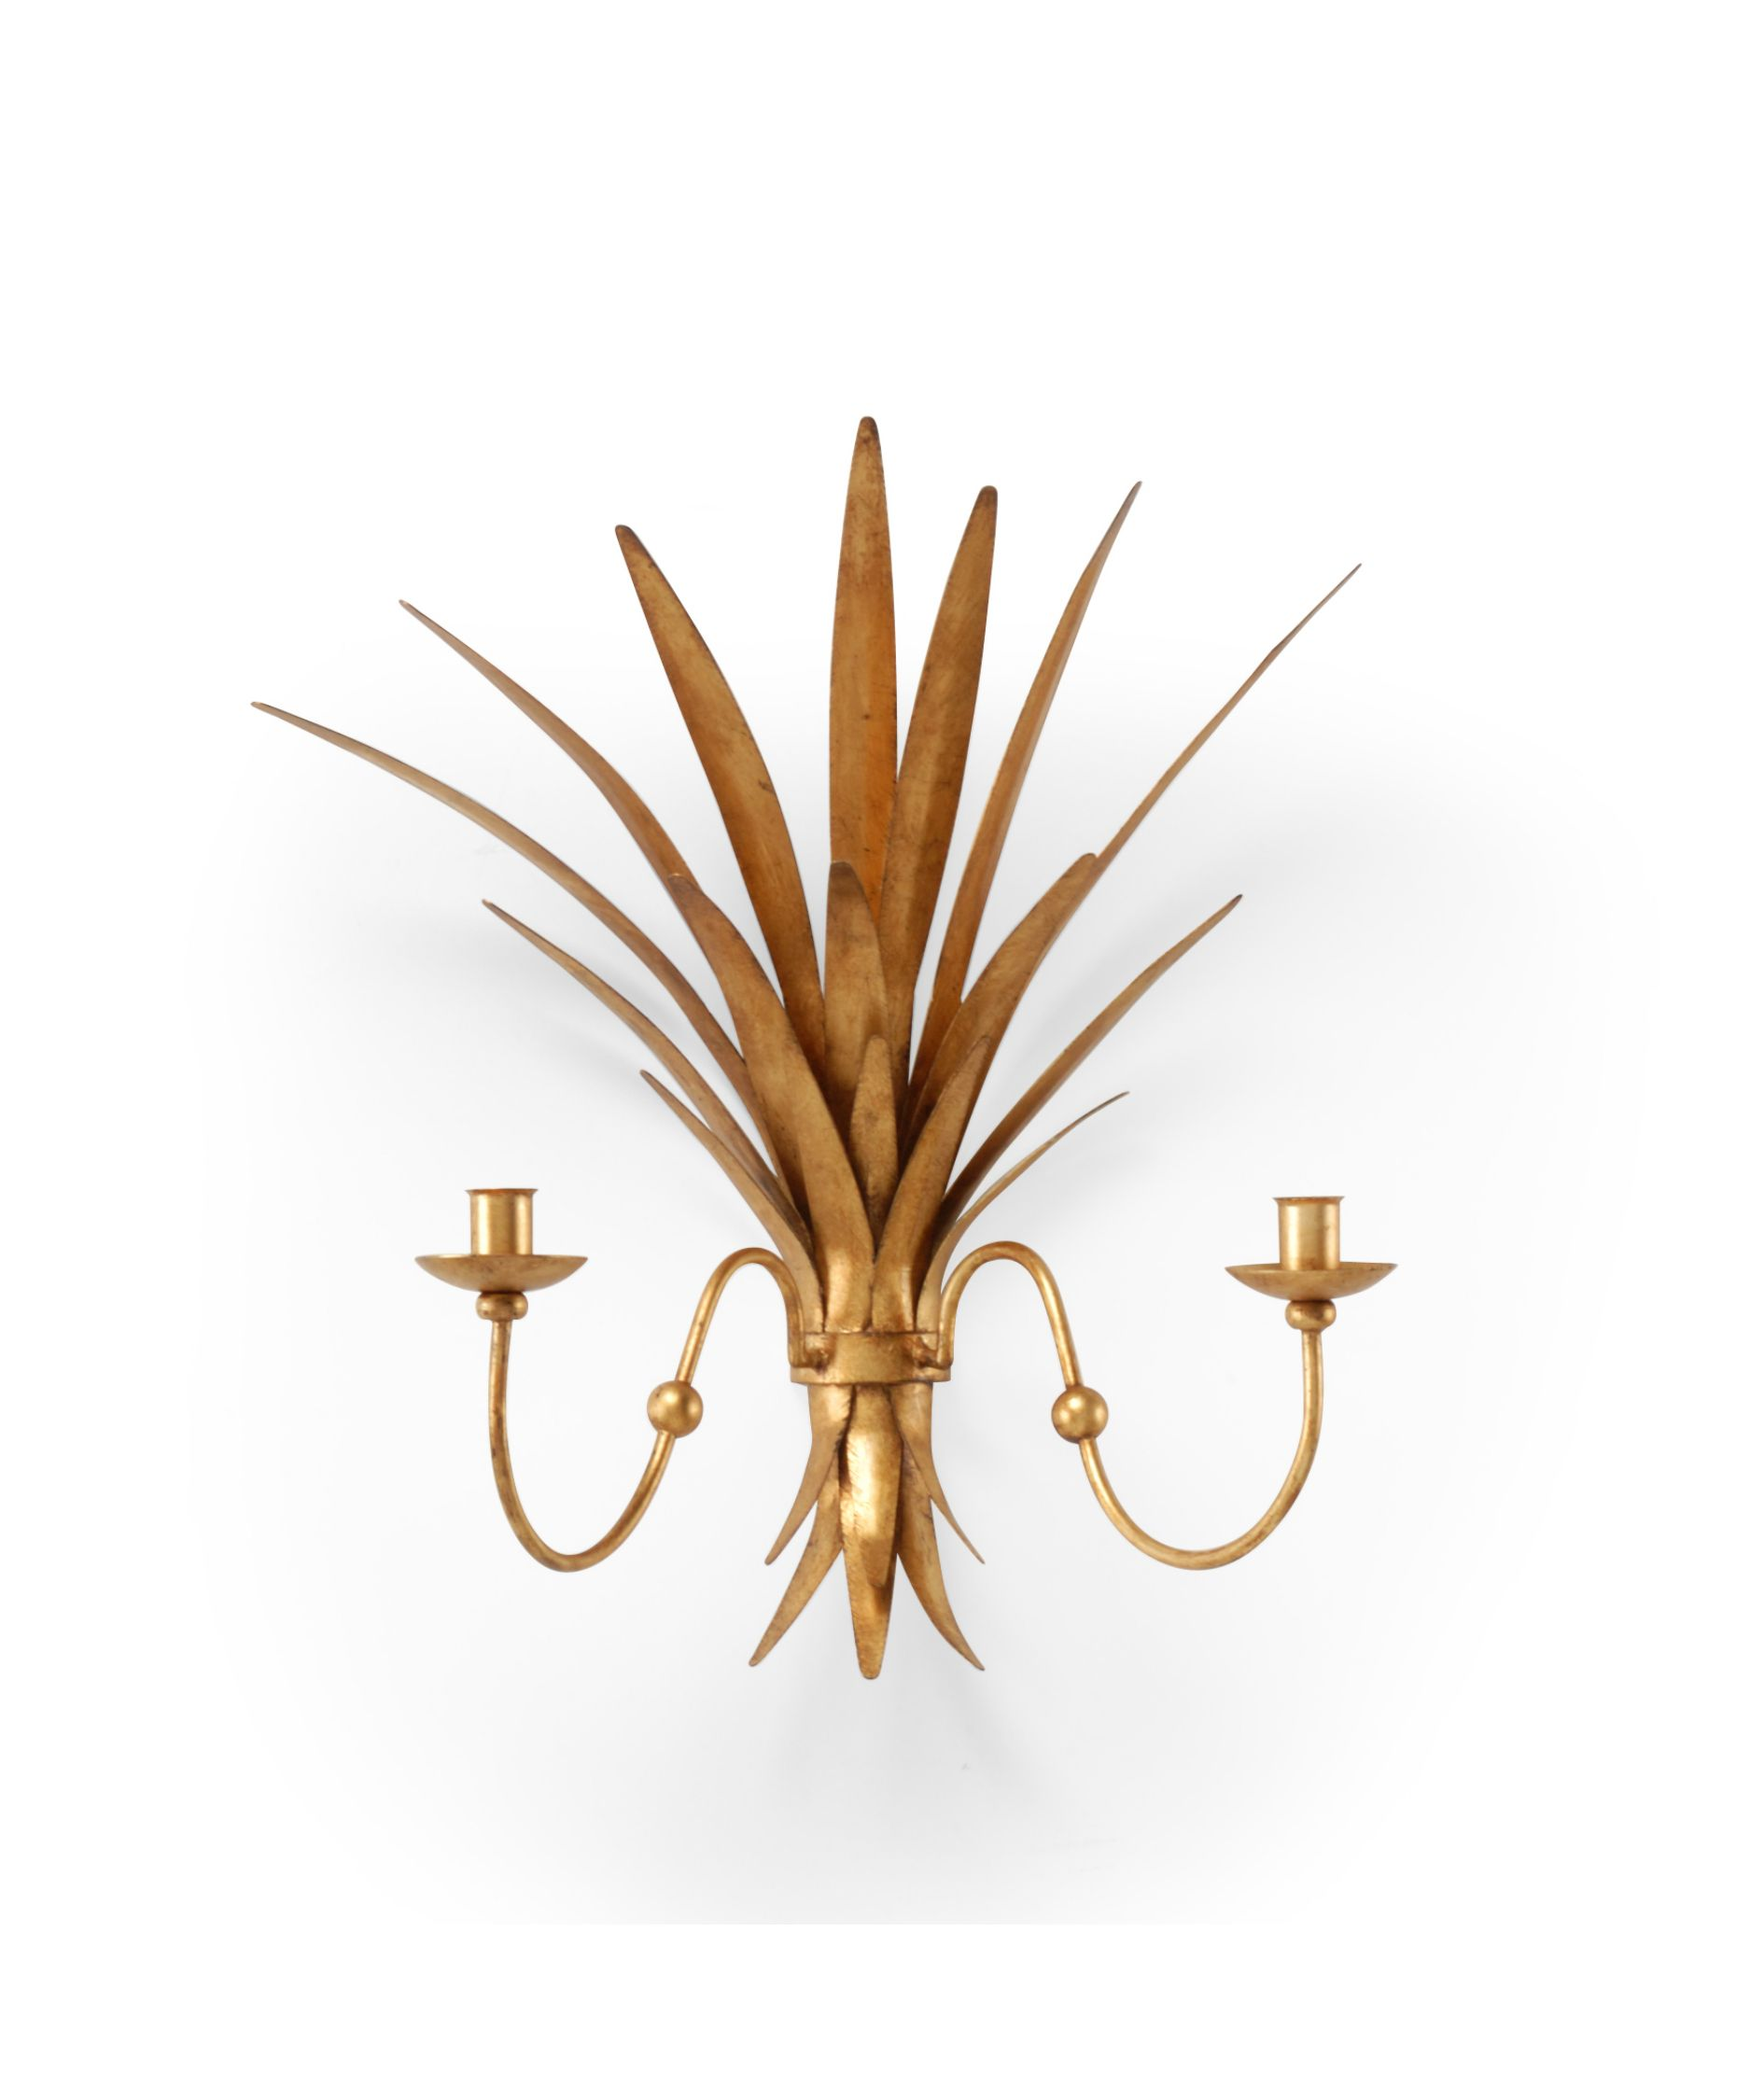 chelsea house 381633 wheat sconce wall candle holder capitol